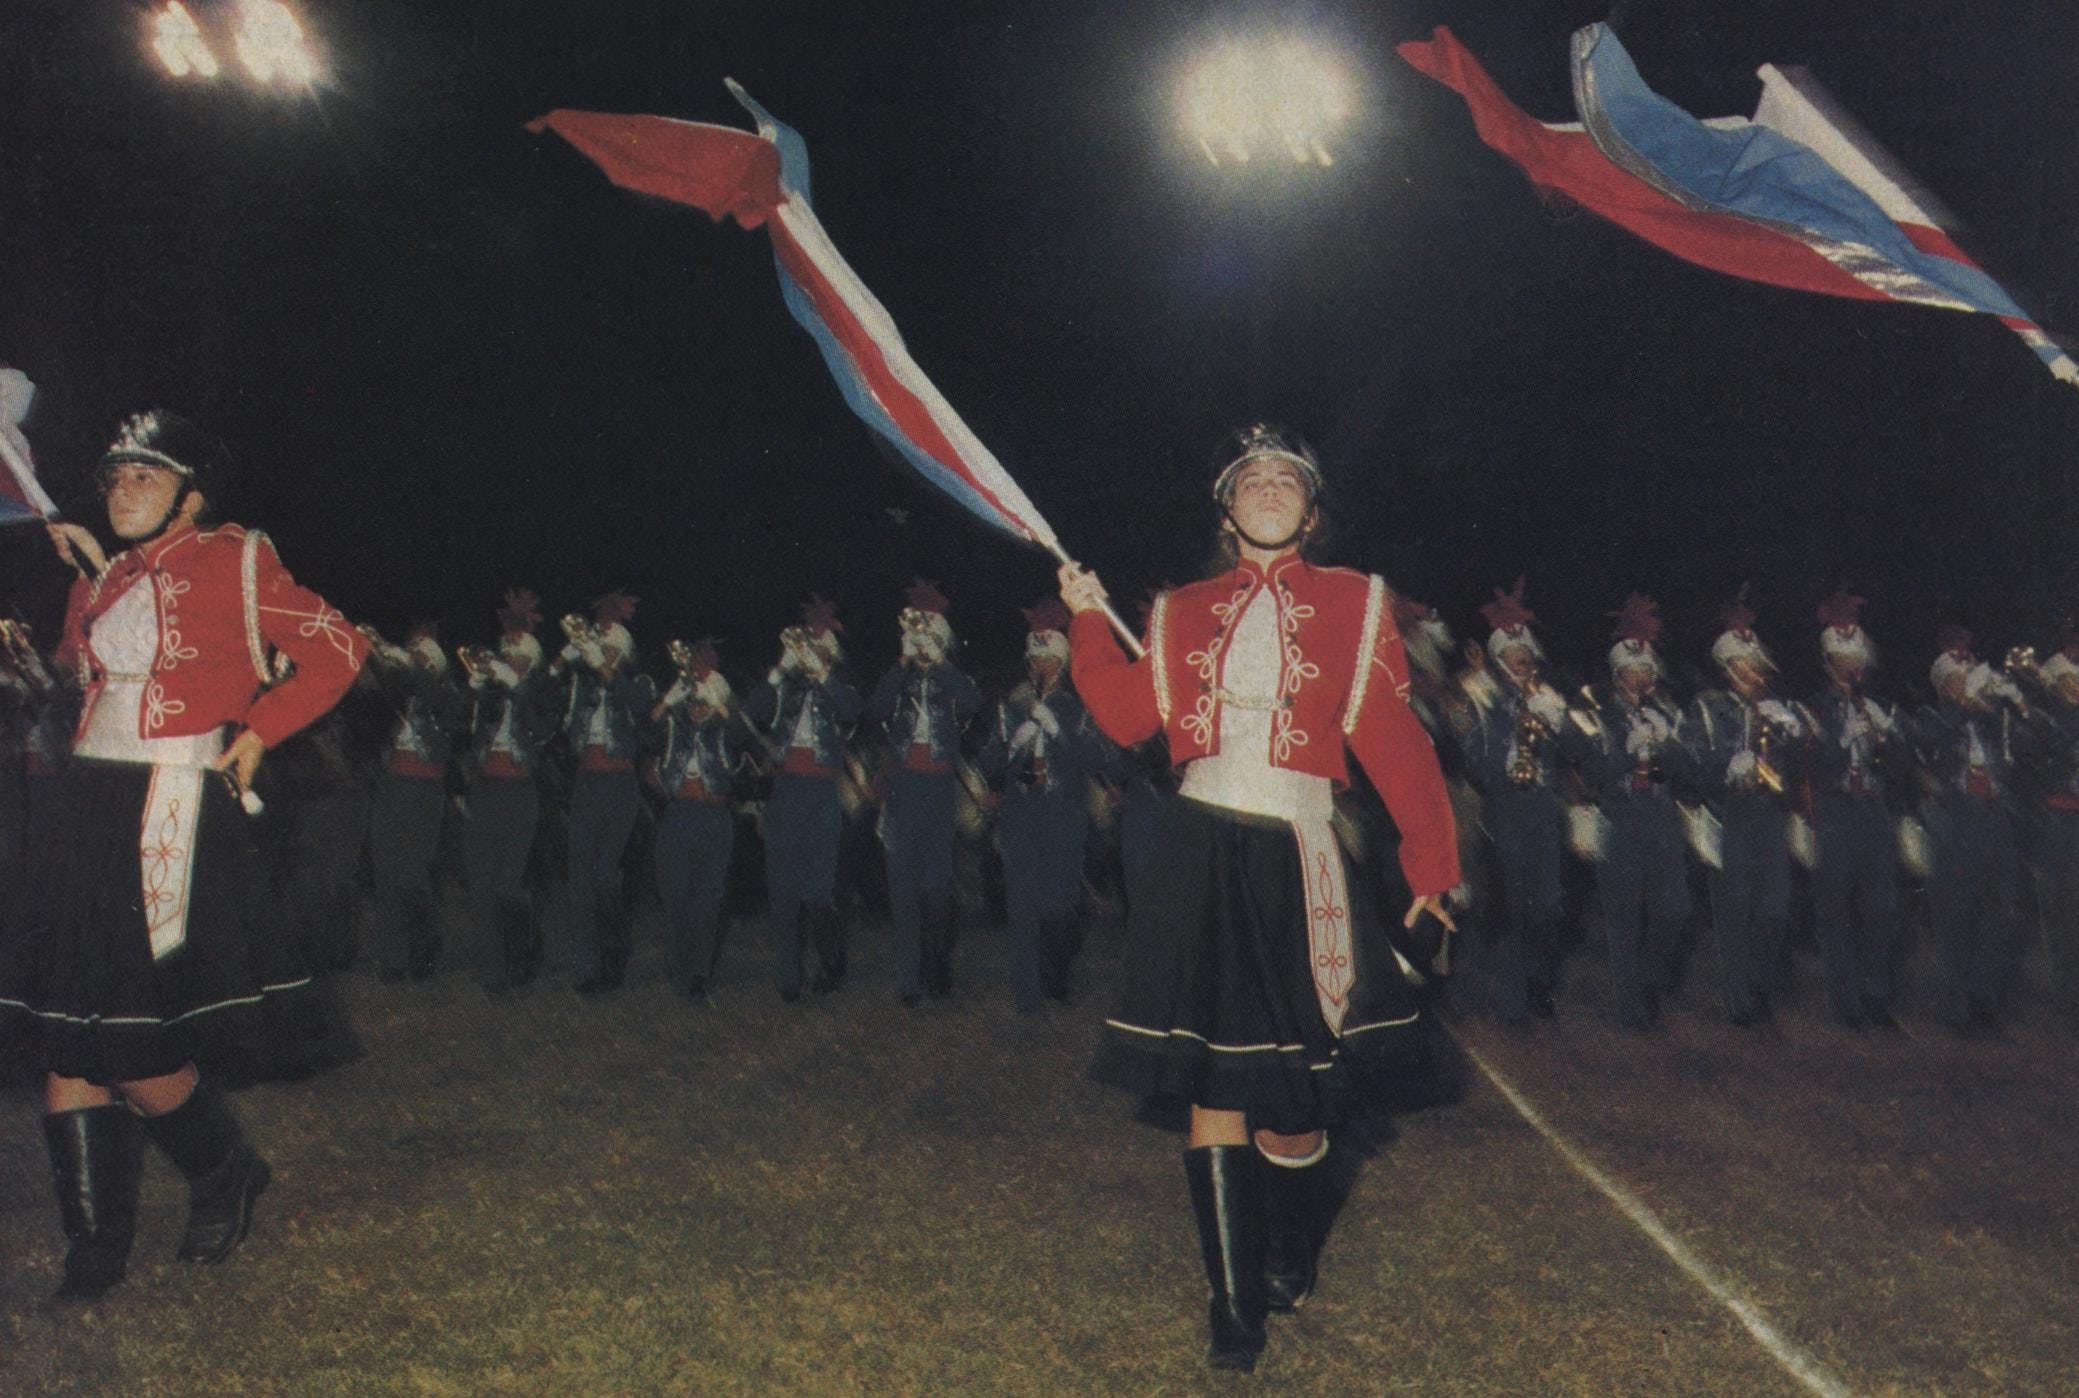 The flag bearers of neighboring Pearce High School strut arrogantly downfield. Note the asymmetry of their arms—bad form.